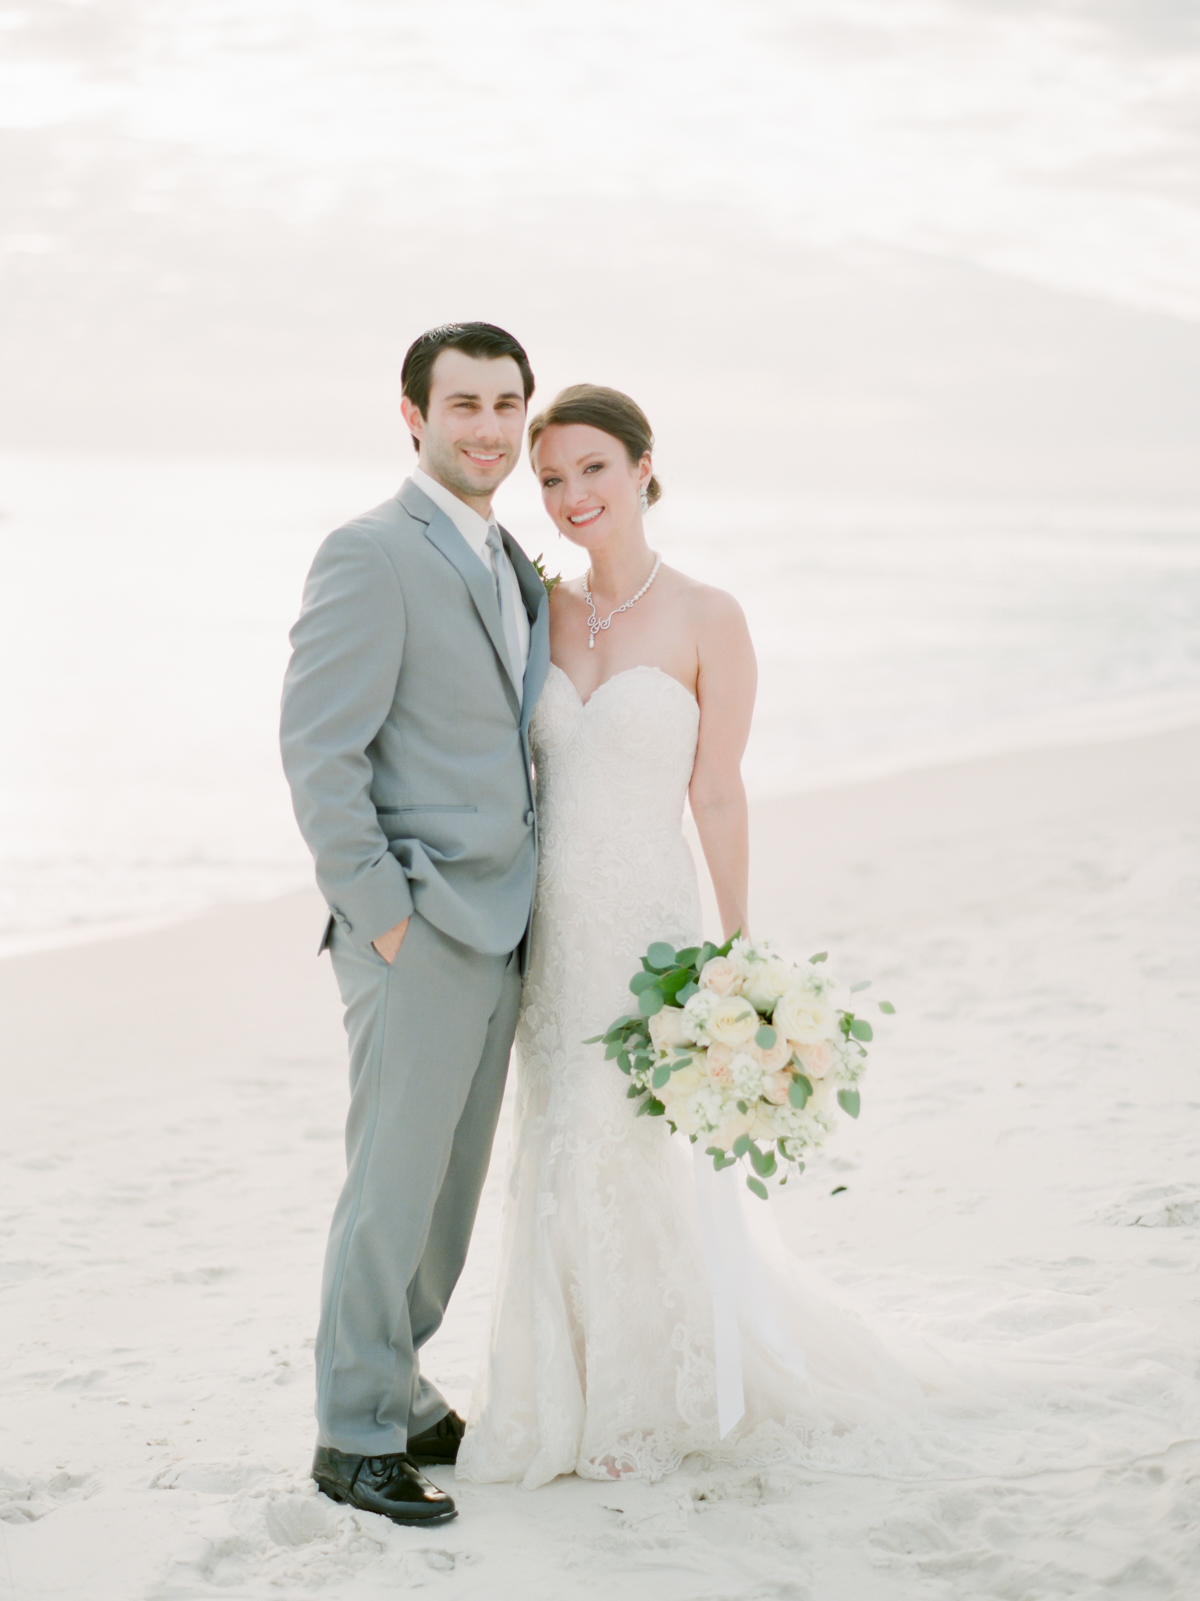 alysbeach-wedding-film-photographer-kayliebpoplinphotography